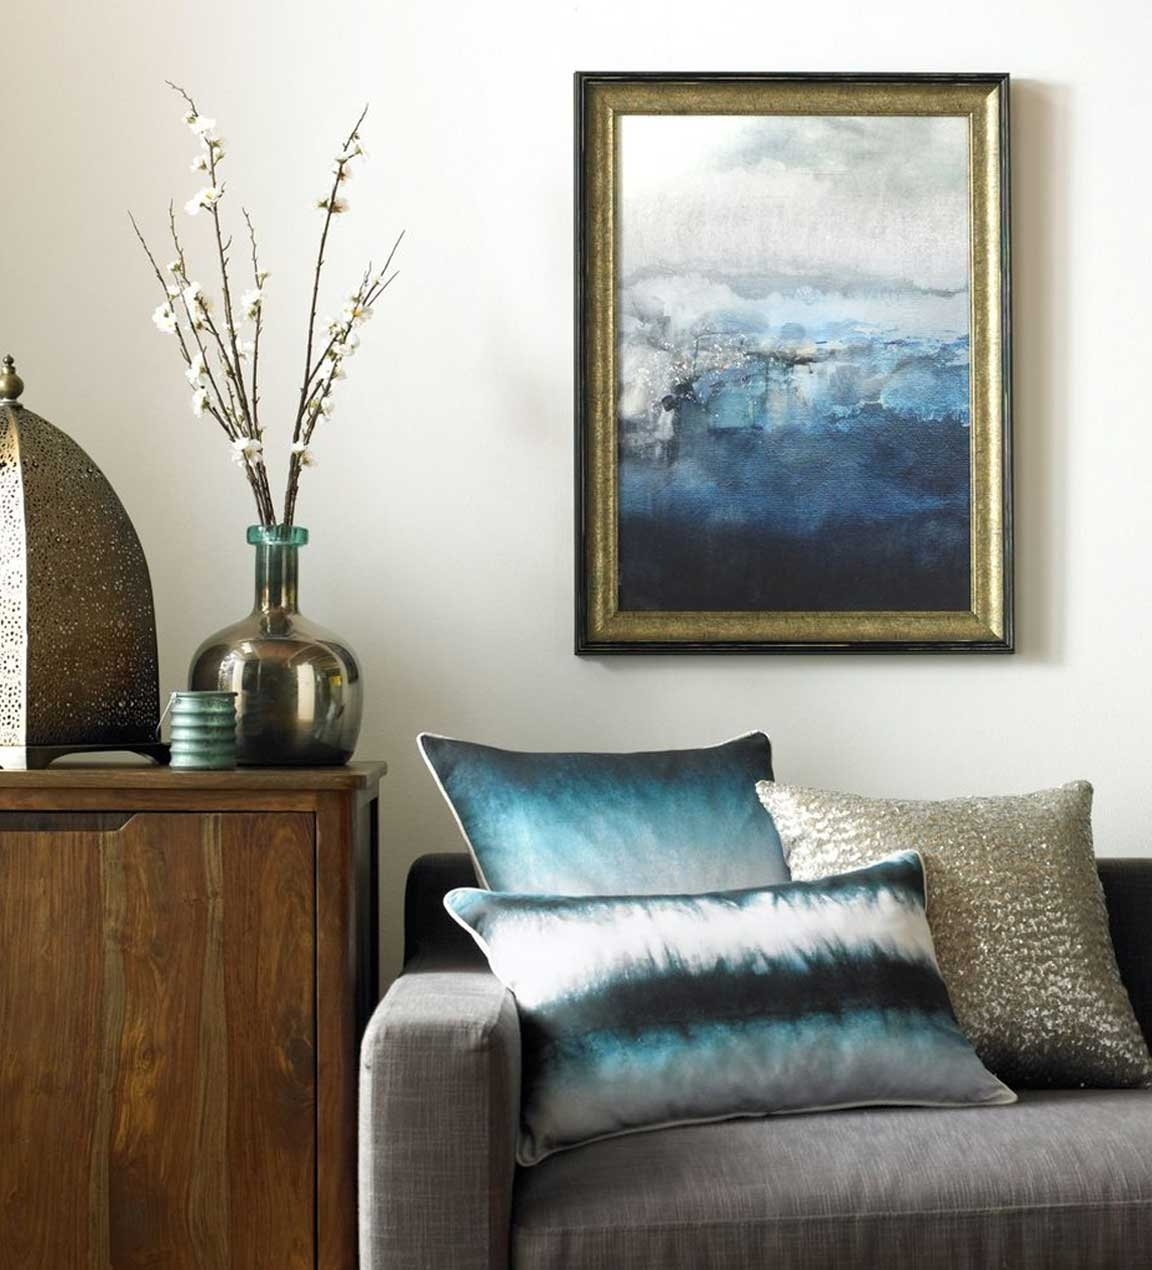 Wall Art   Wall Decor   Canvas Prints Intended For Best And Newest Kingdom Abstract Metal Wall Art (View 20 of 20)